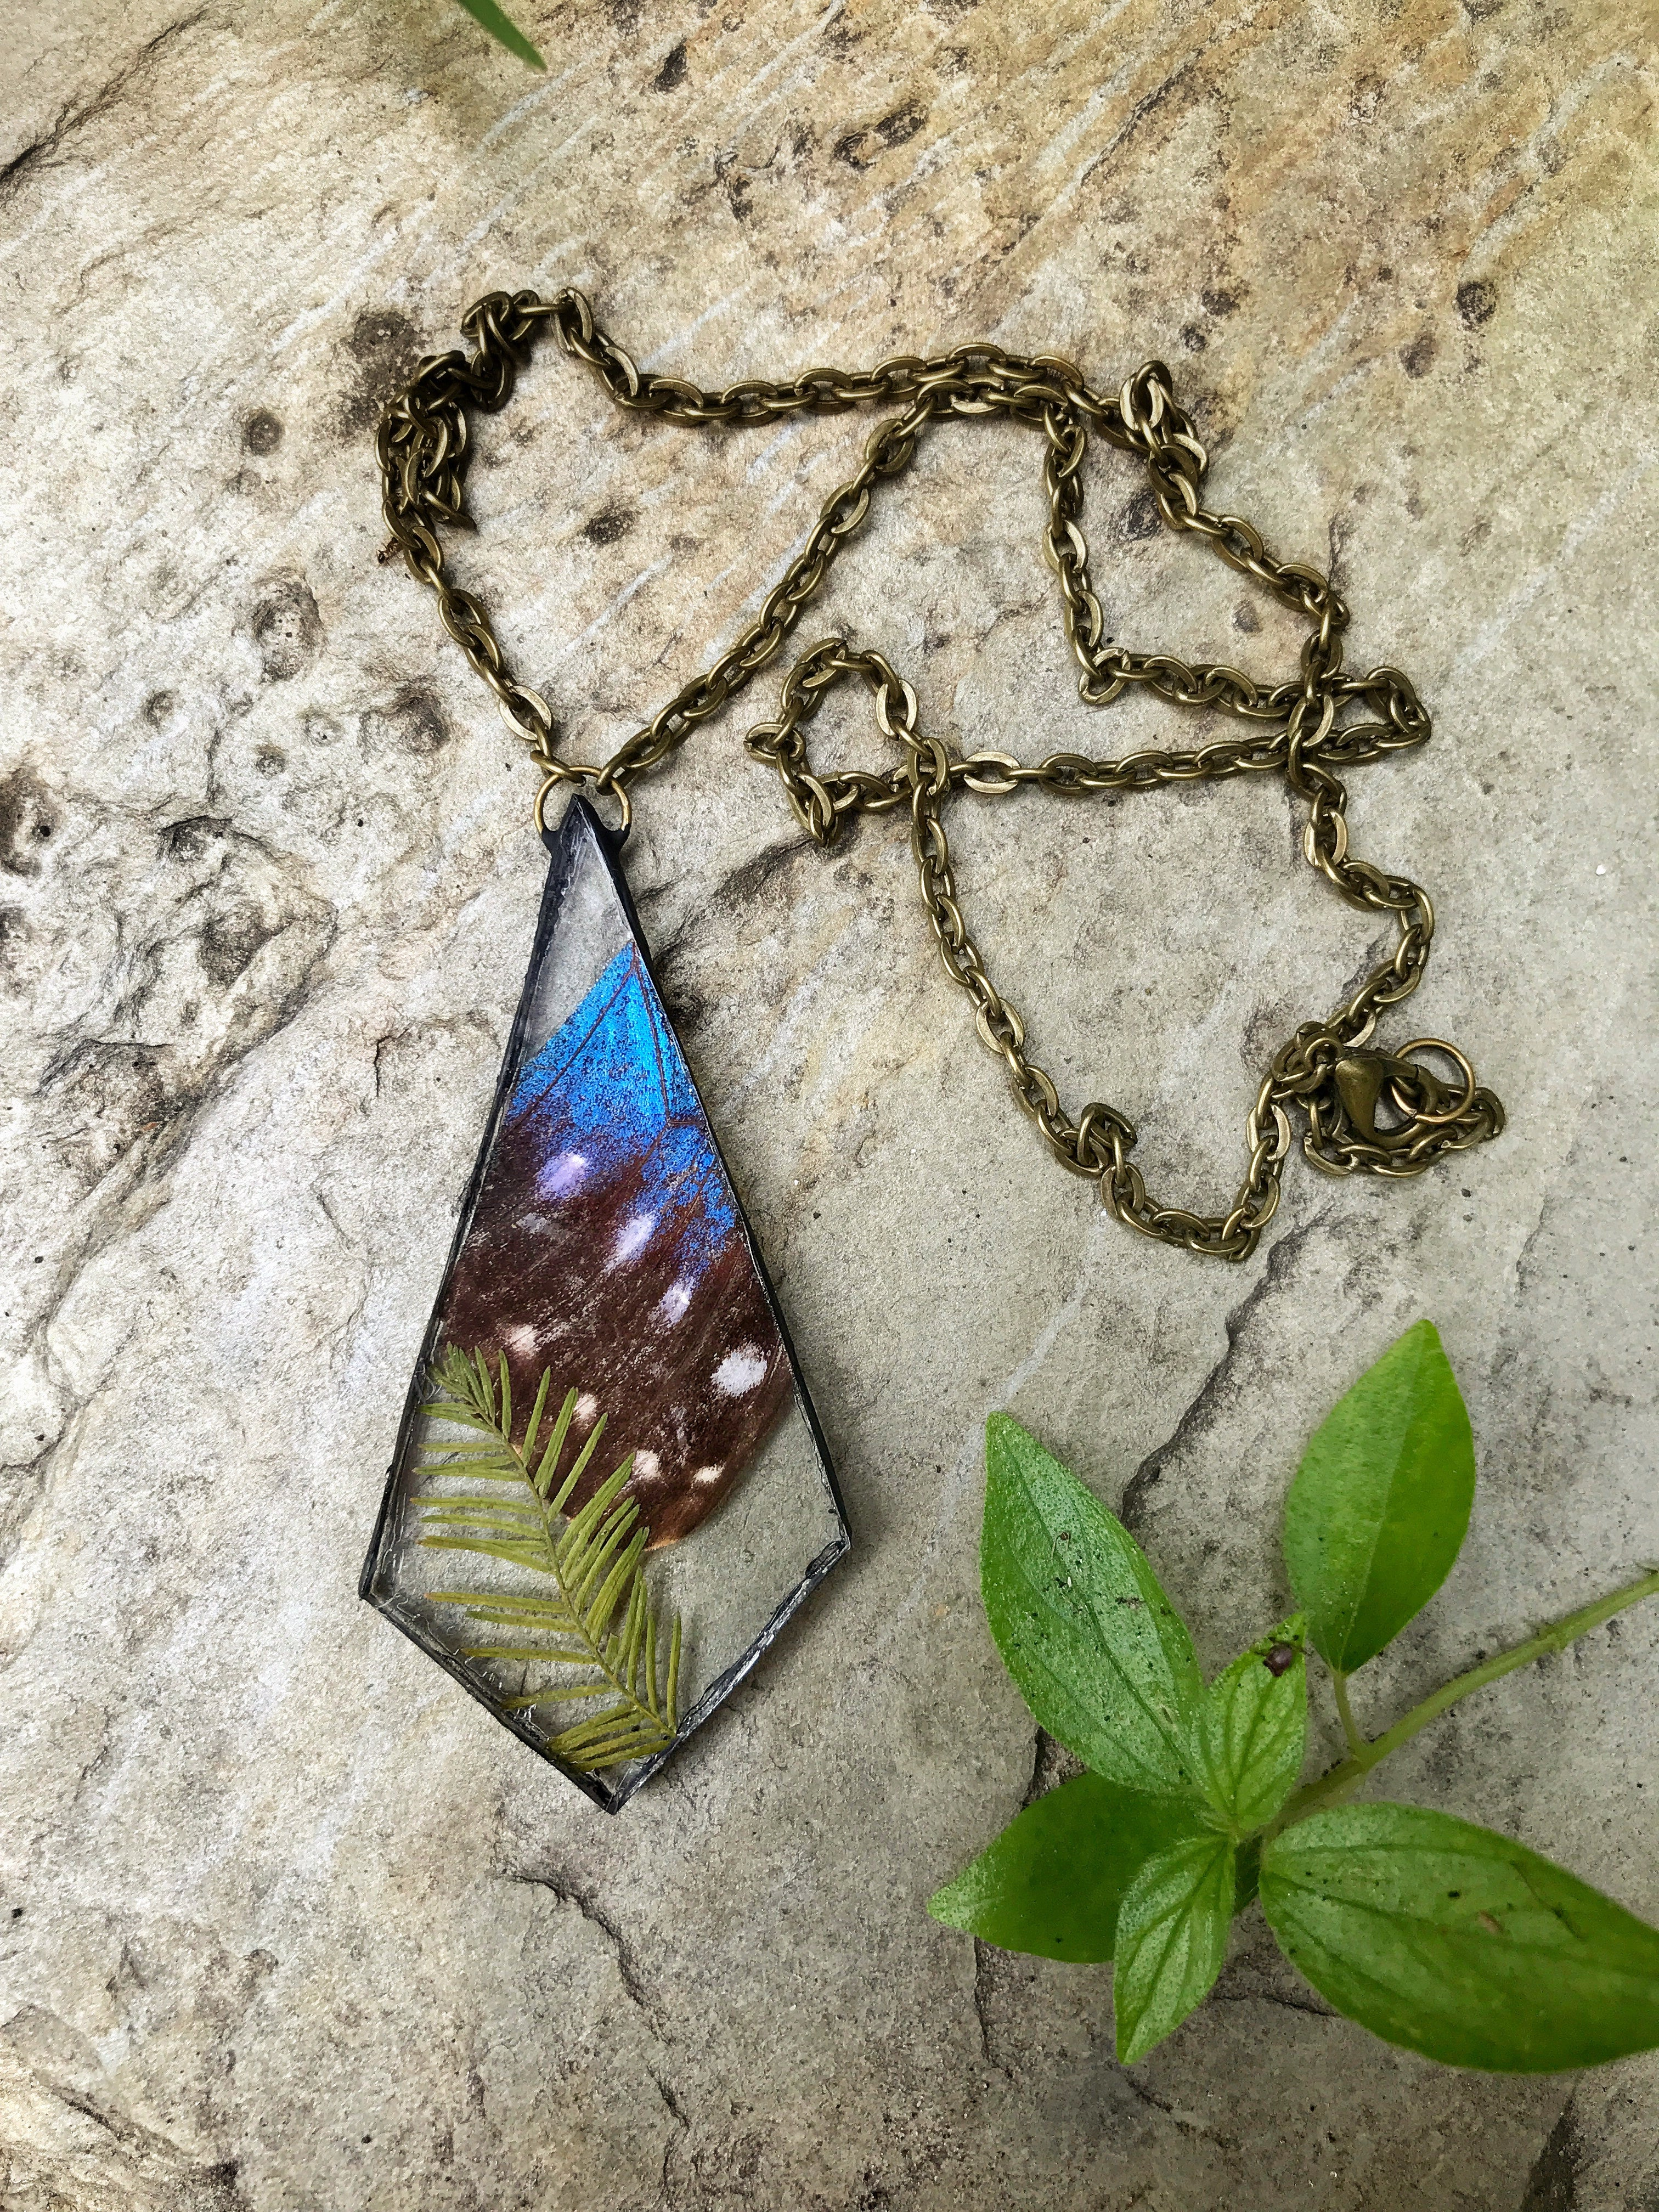 Morpho Wing Necklace with Leafs